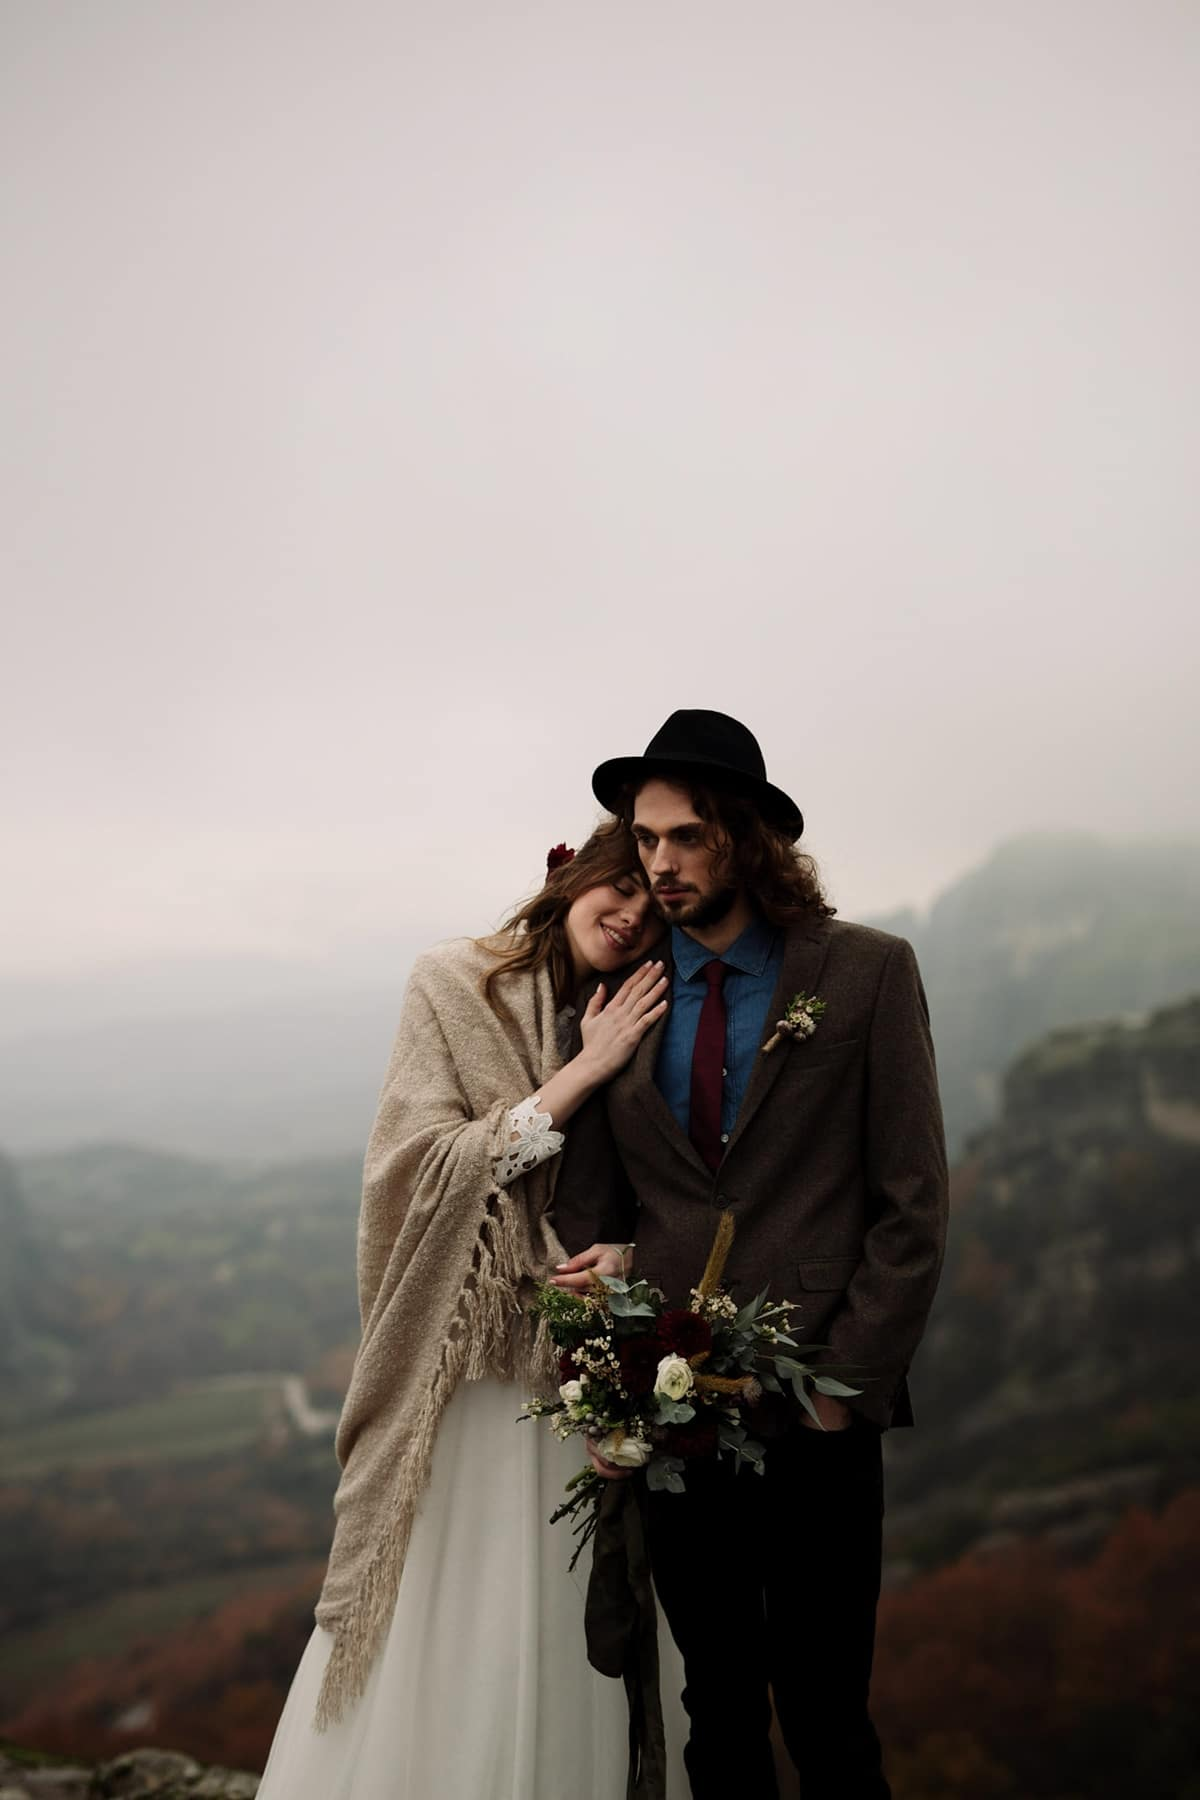 Ideas for romantic winter elopement at the mountains